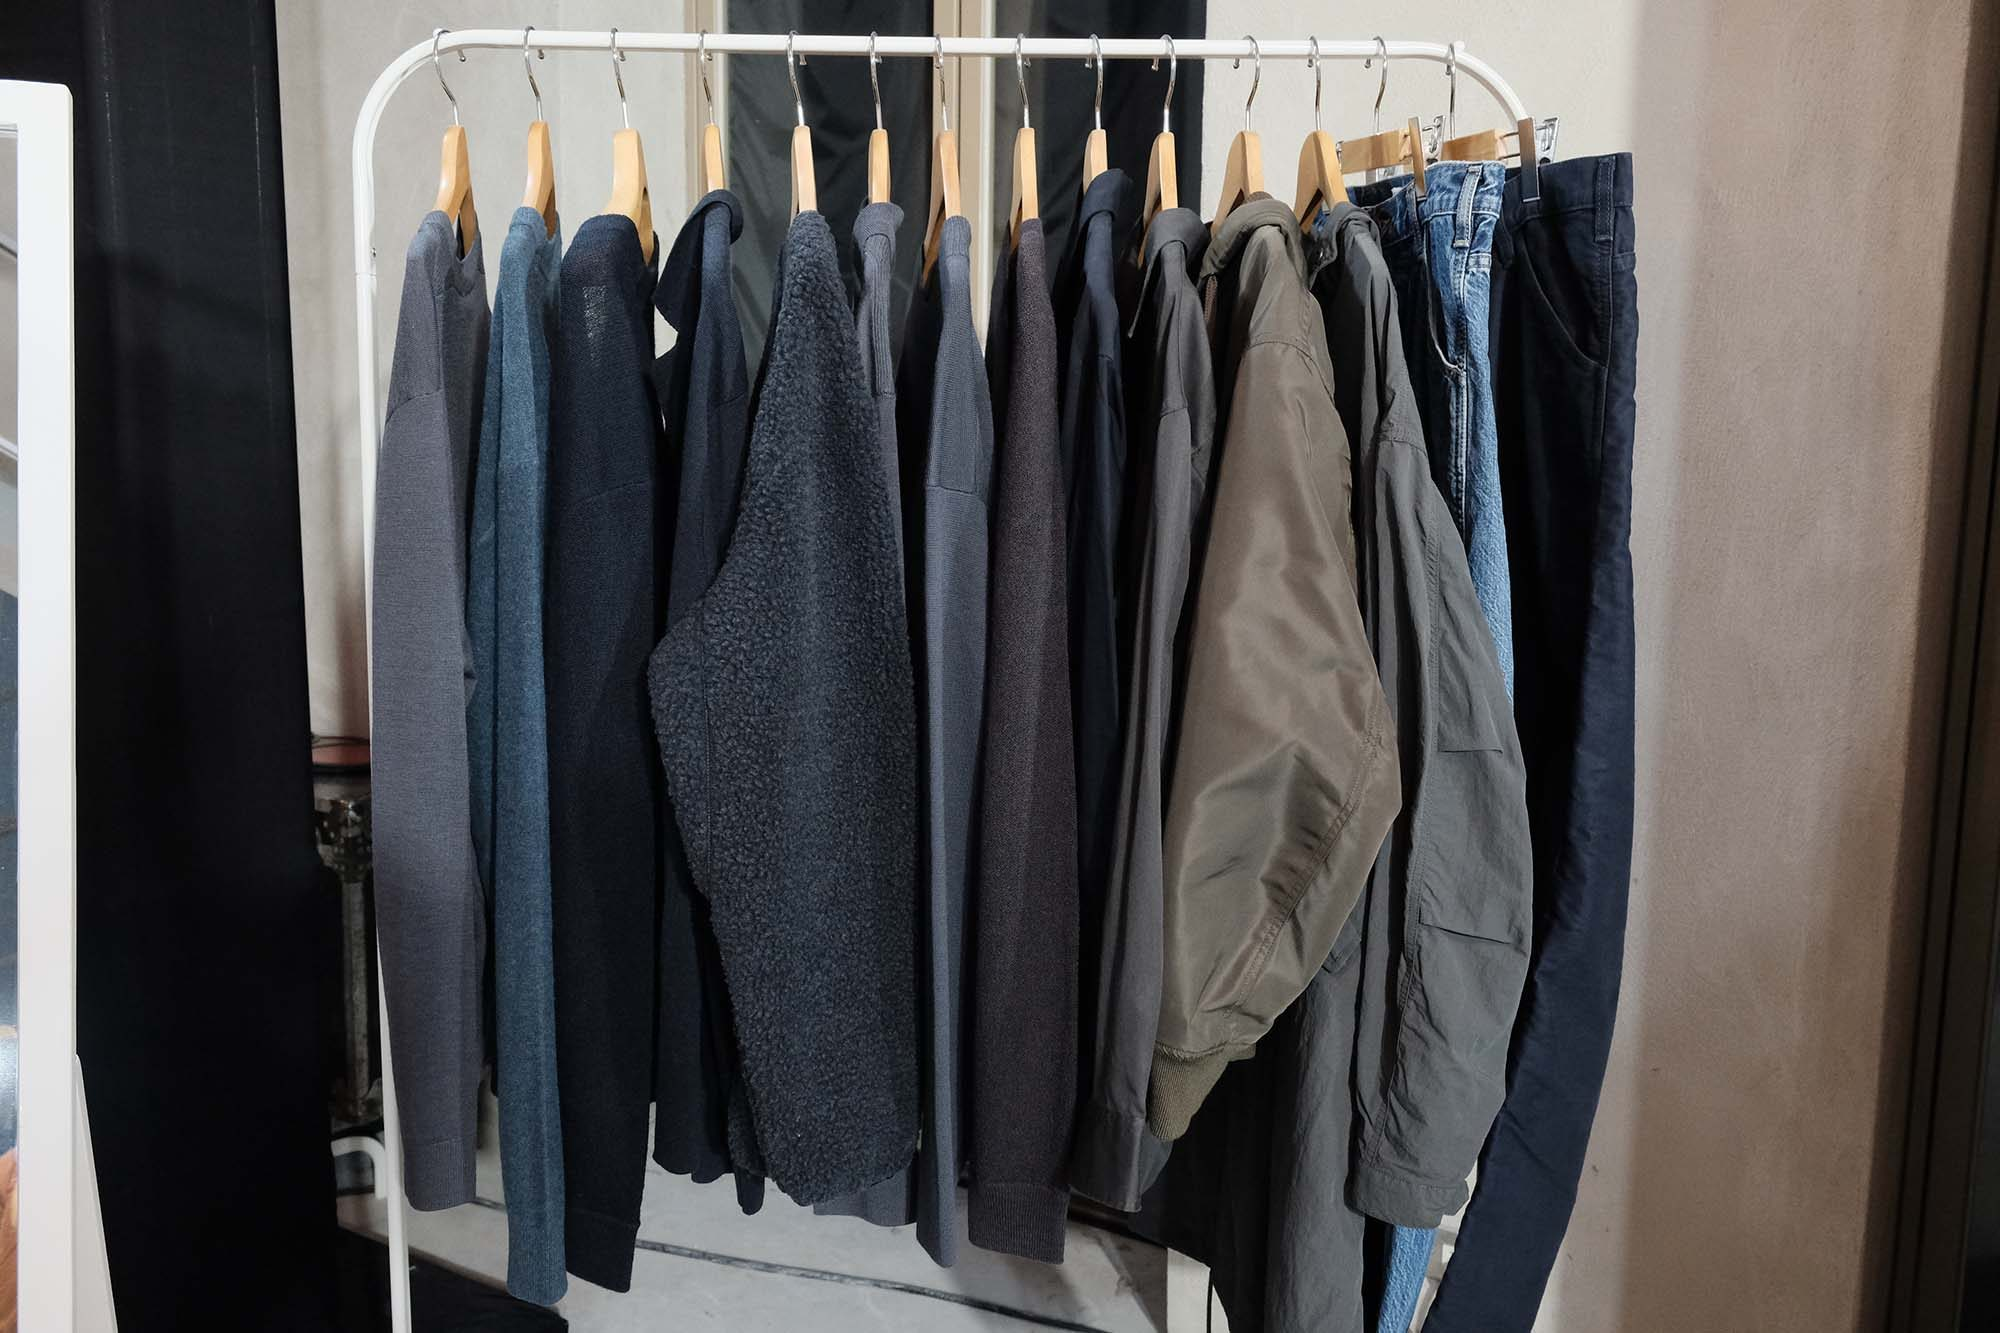 uniqlo-u-2018-aw-collection-preview-04